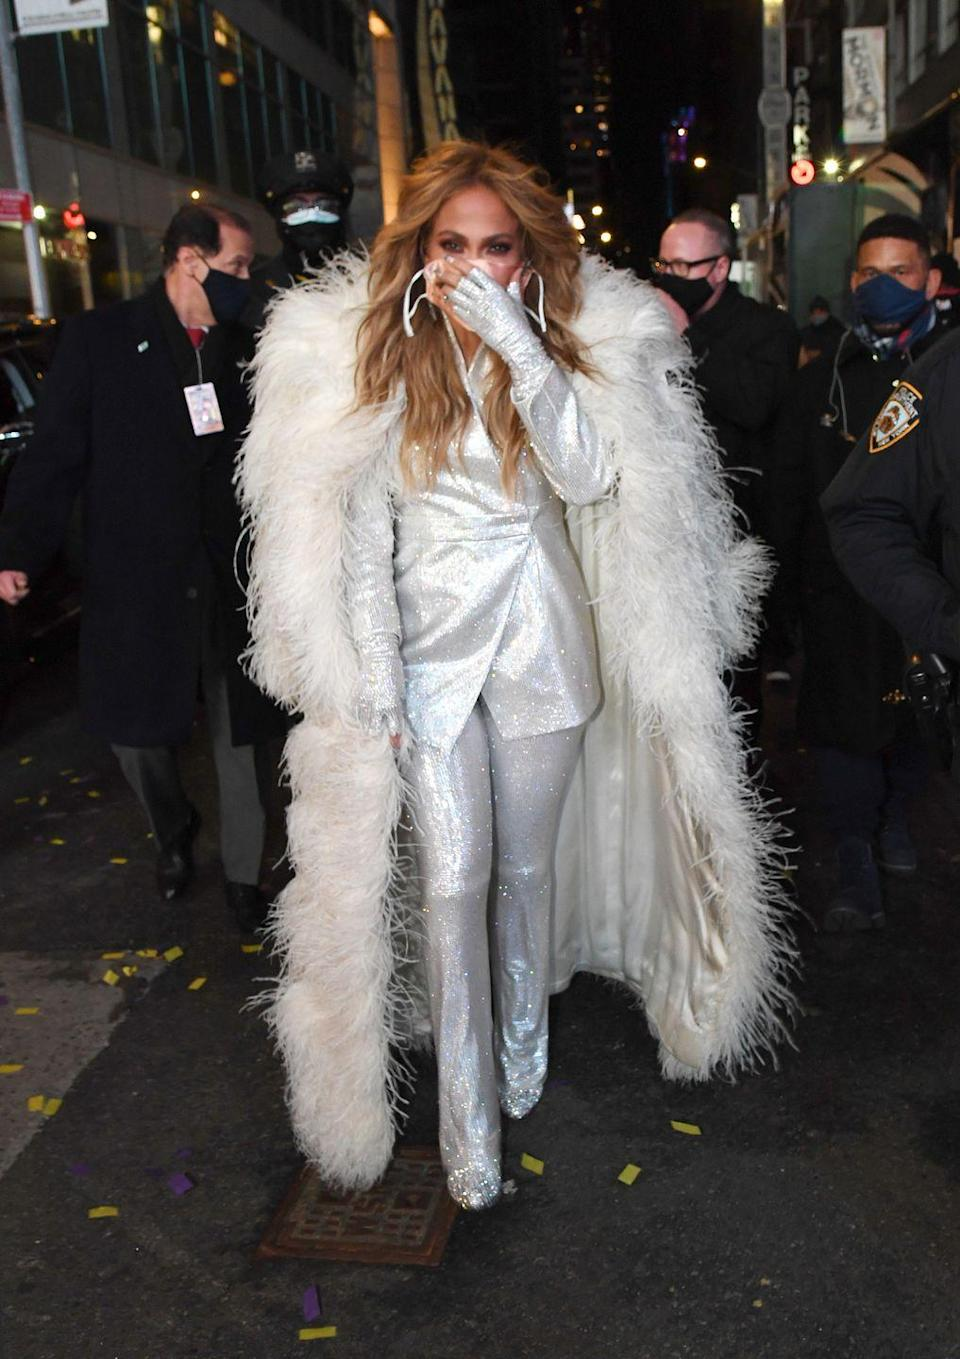 <p>Jennifer Lopez looked like she was ready to celebrate the end of 2020 (same Jennifer, same) as she walked to the stage for her New Years Eve performance in Times Square, New York City. </p><p>The singer wore a full silver trouser suit to ring in 2021, with matching boots, fingerless gloves and an ankle-length white, furry coat to keep warm in a very cold NYC. </p>